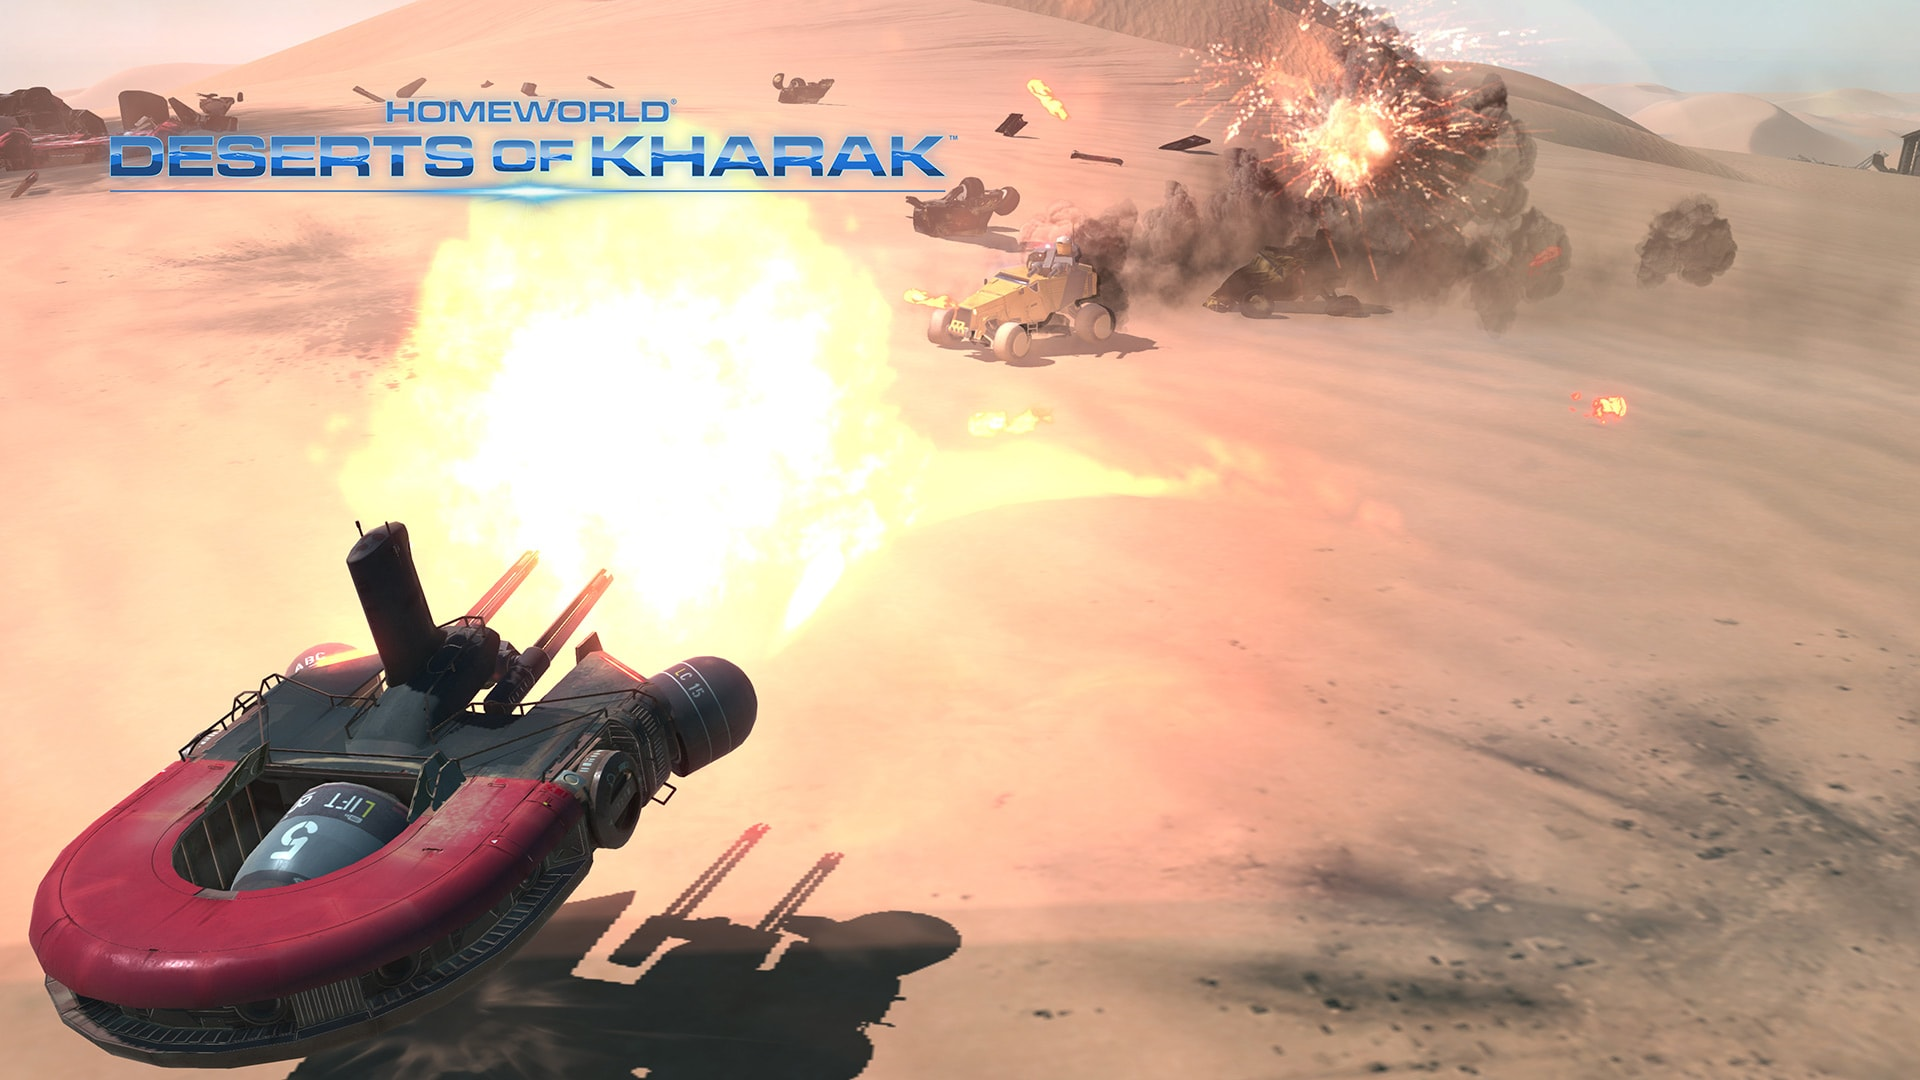 Homeworld: Deserts of Kharak High